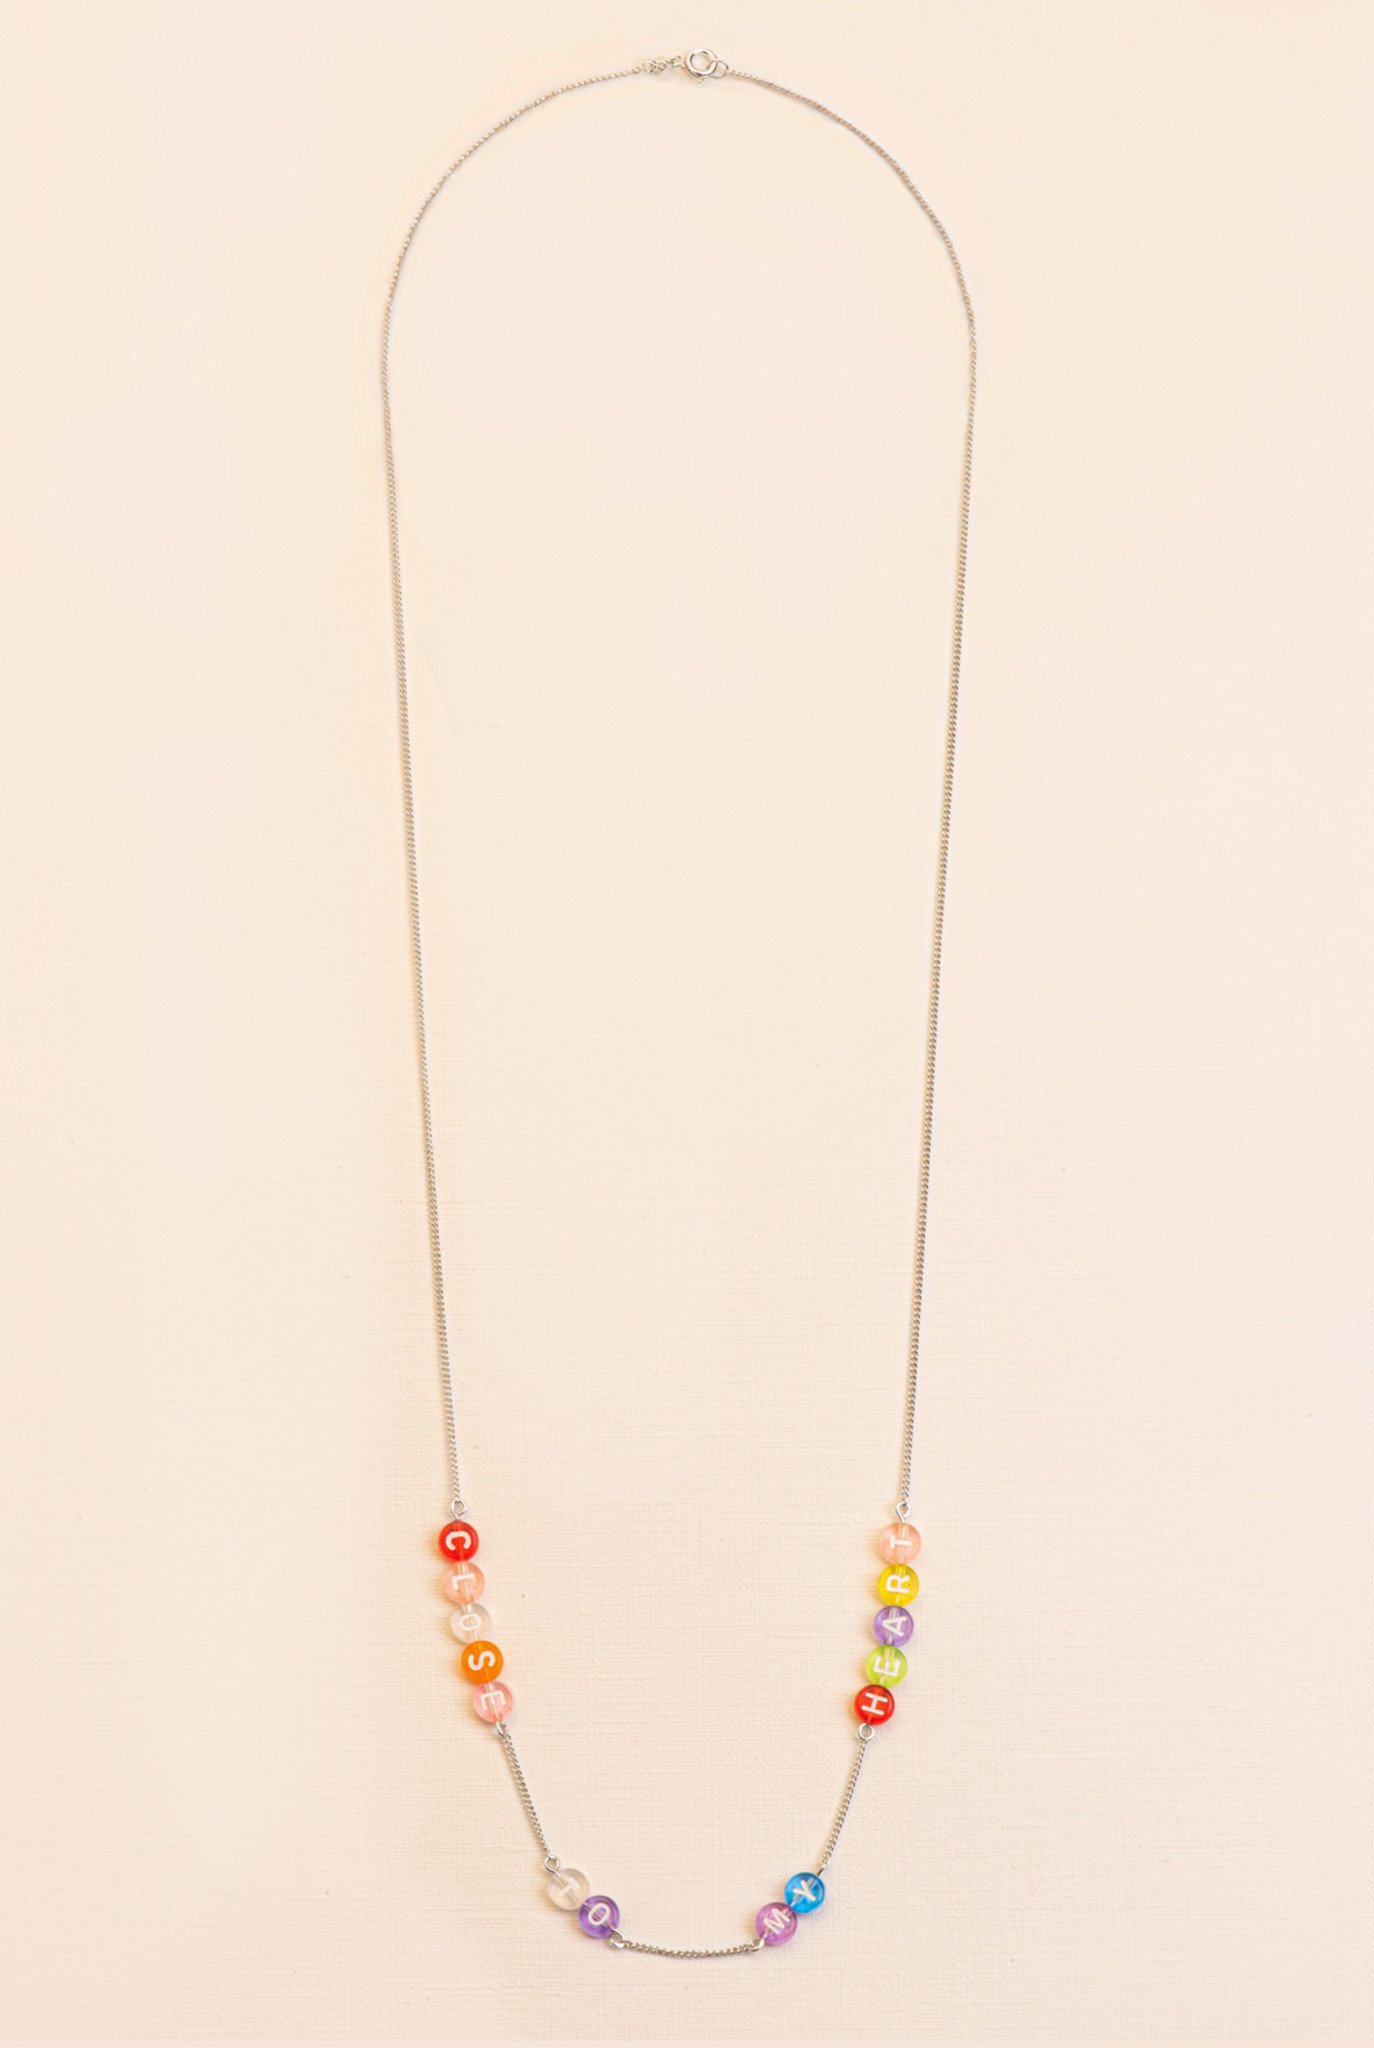 necklace with colorful vintage alphabet beads